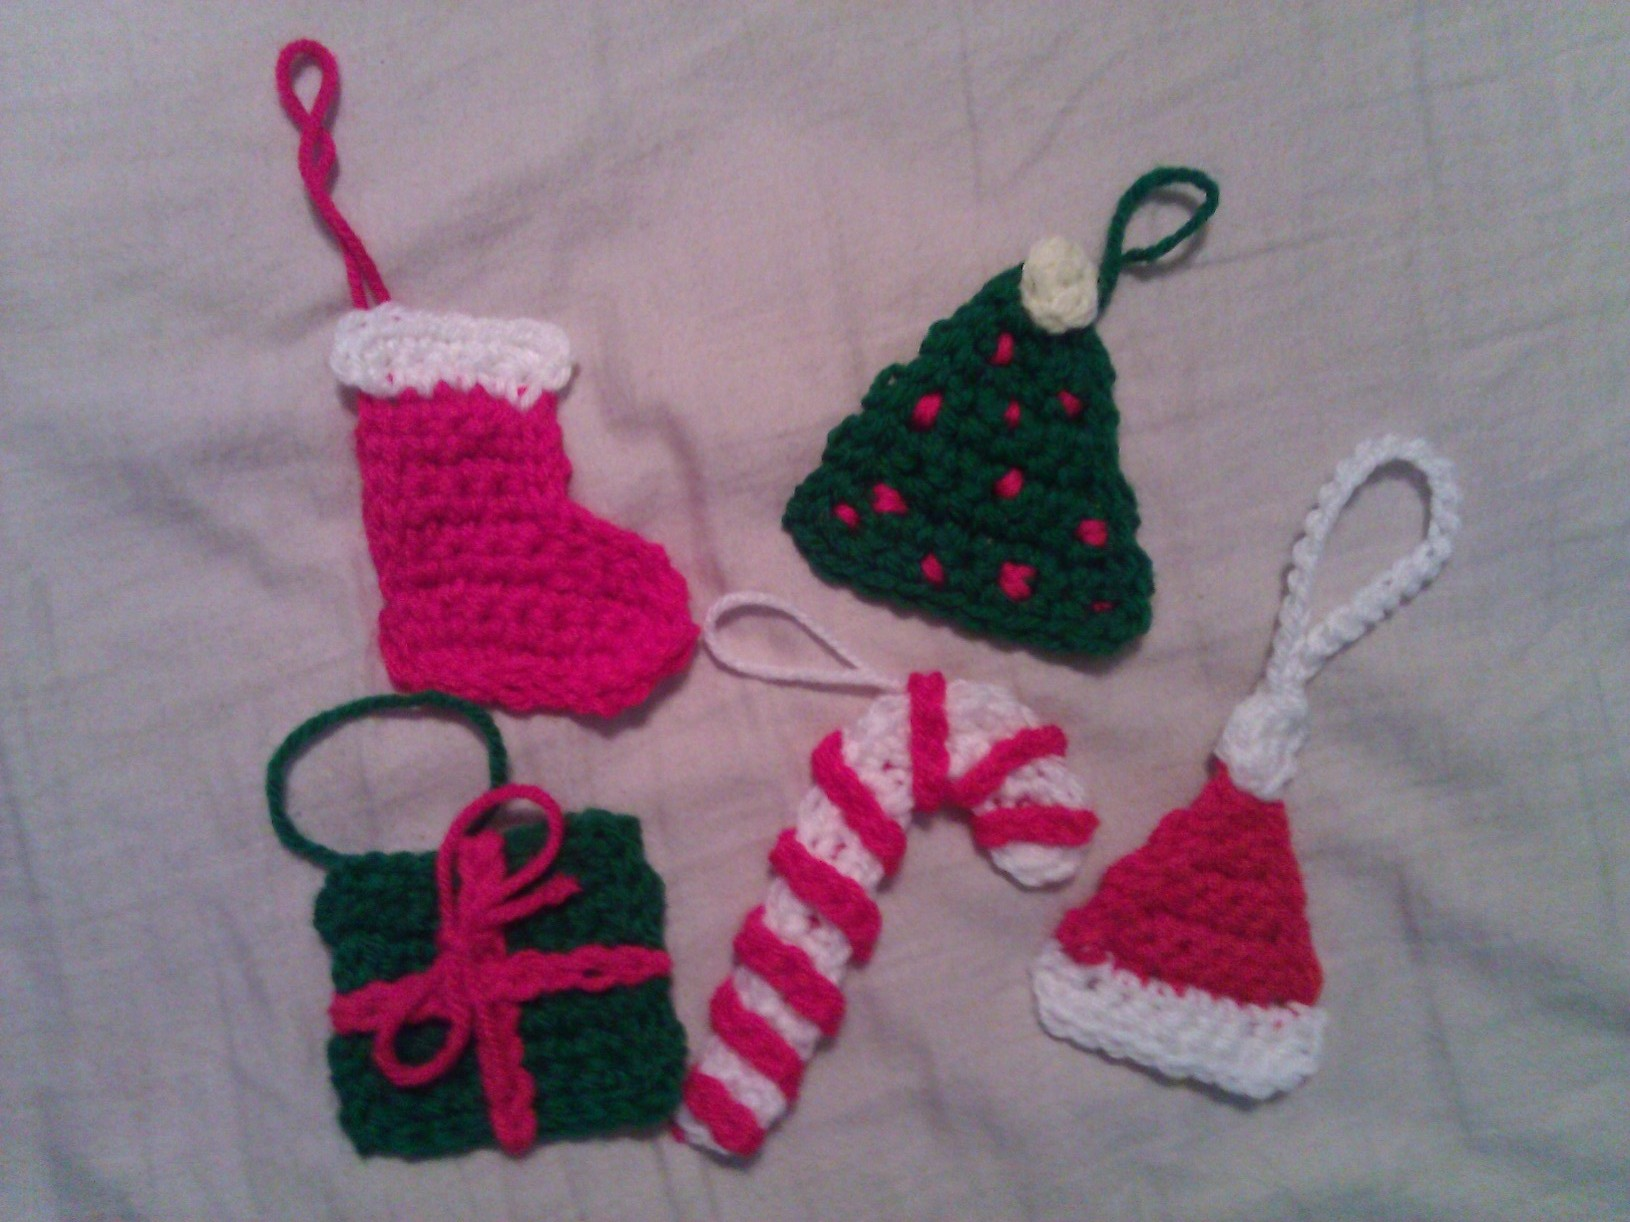 Christmas Crochet Patterns : crochet pattern: classic christmas ornament set